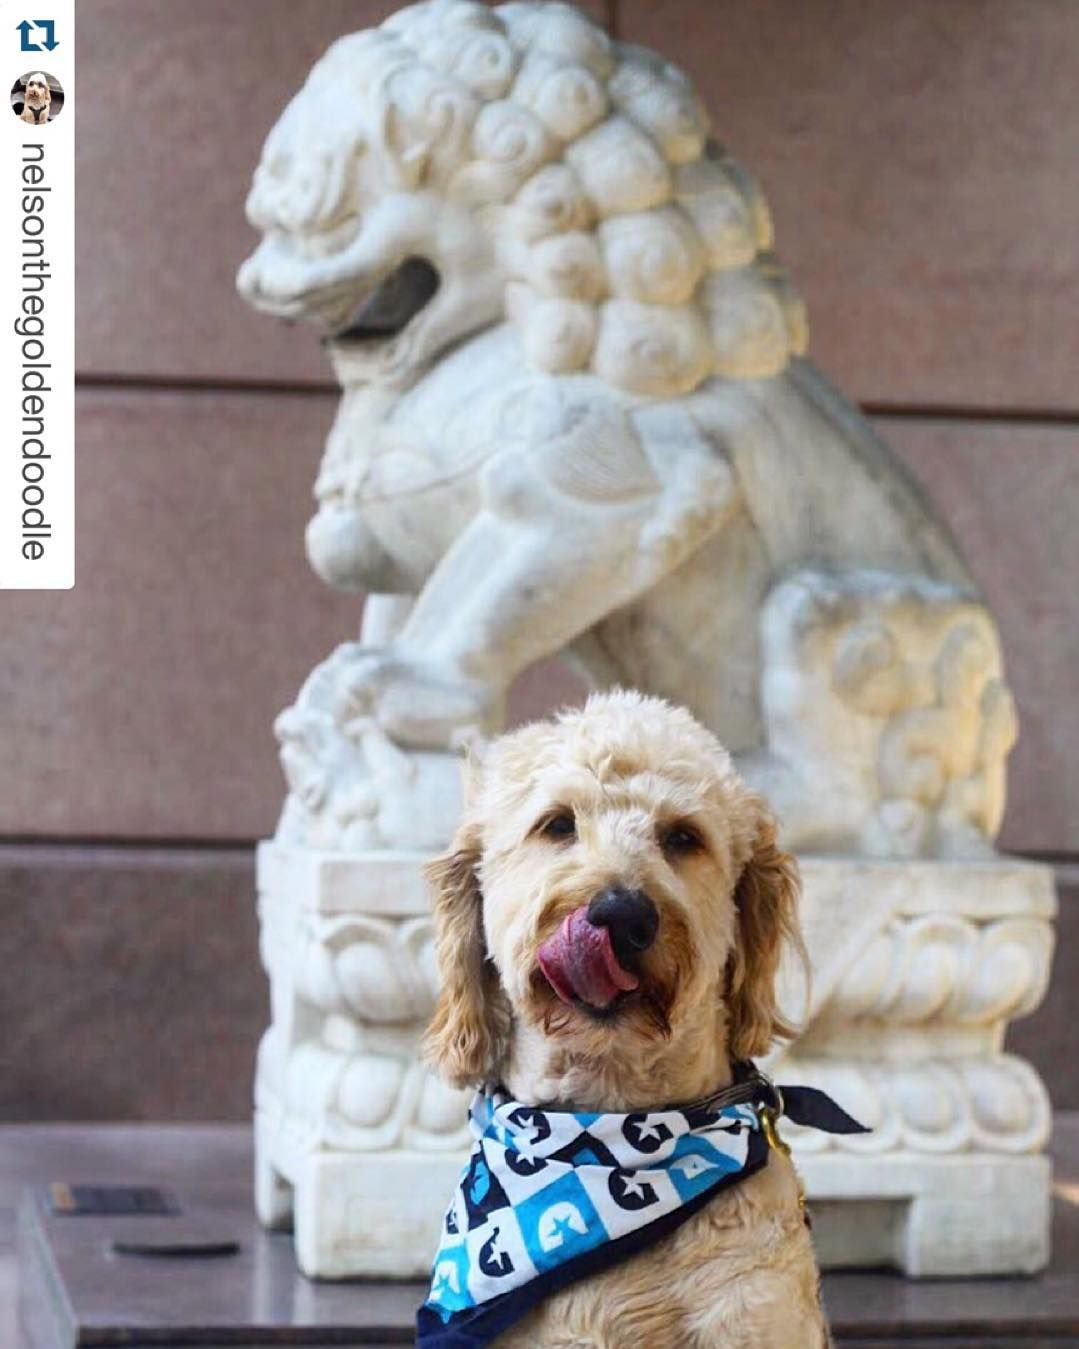 Join us for #CrowAdventureAsia Lions & Tigers & Panda Bears Oh My! Free fun activities today from 10 am - 2 pm. Pets are welcome in the sculpture garden so bring your furry friends. #crowcollection  #Repost @nelsonthegoldendoodle with @repostapp.  I'm terrified of the statues at  the #TrammellCrow Asian Art Museum so I'm pretending he's not behind me.  #helloworldRELAY #BrandUSA